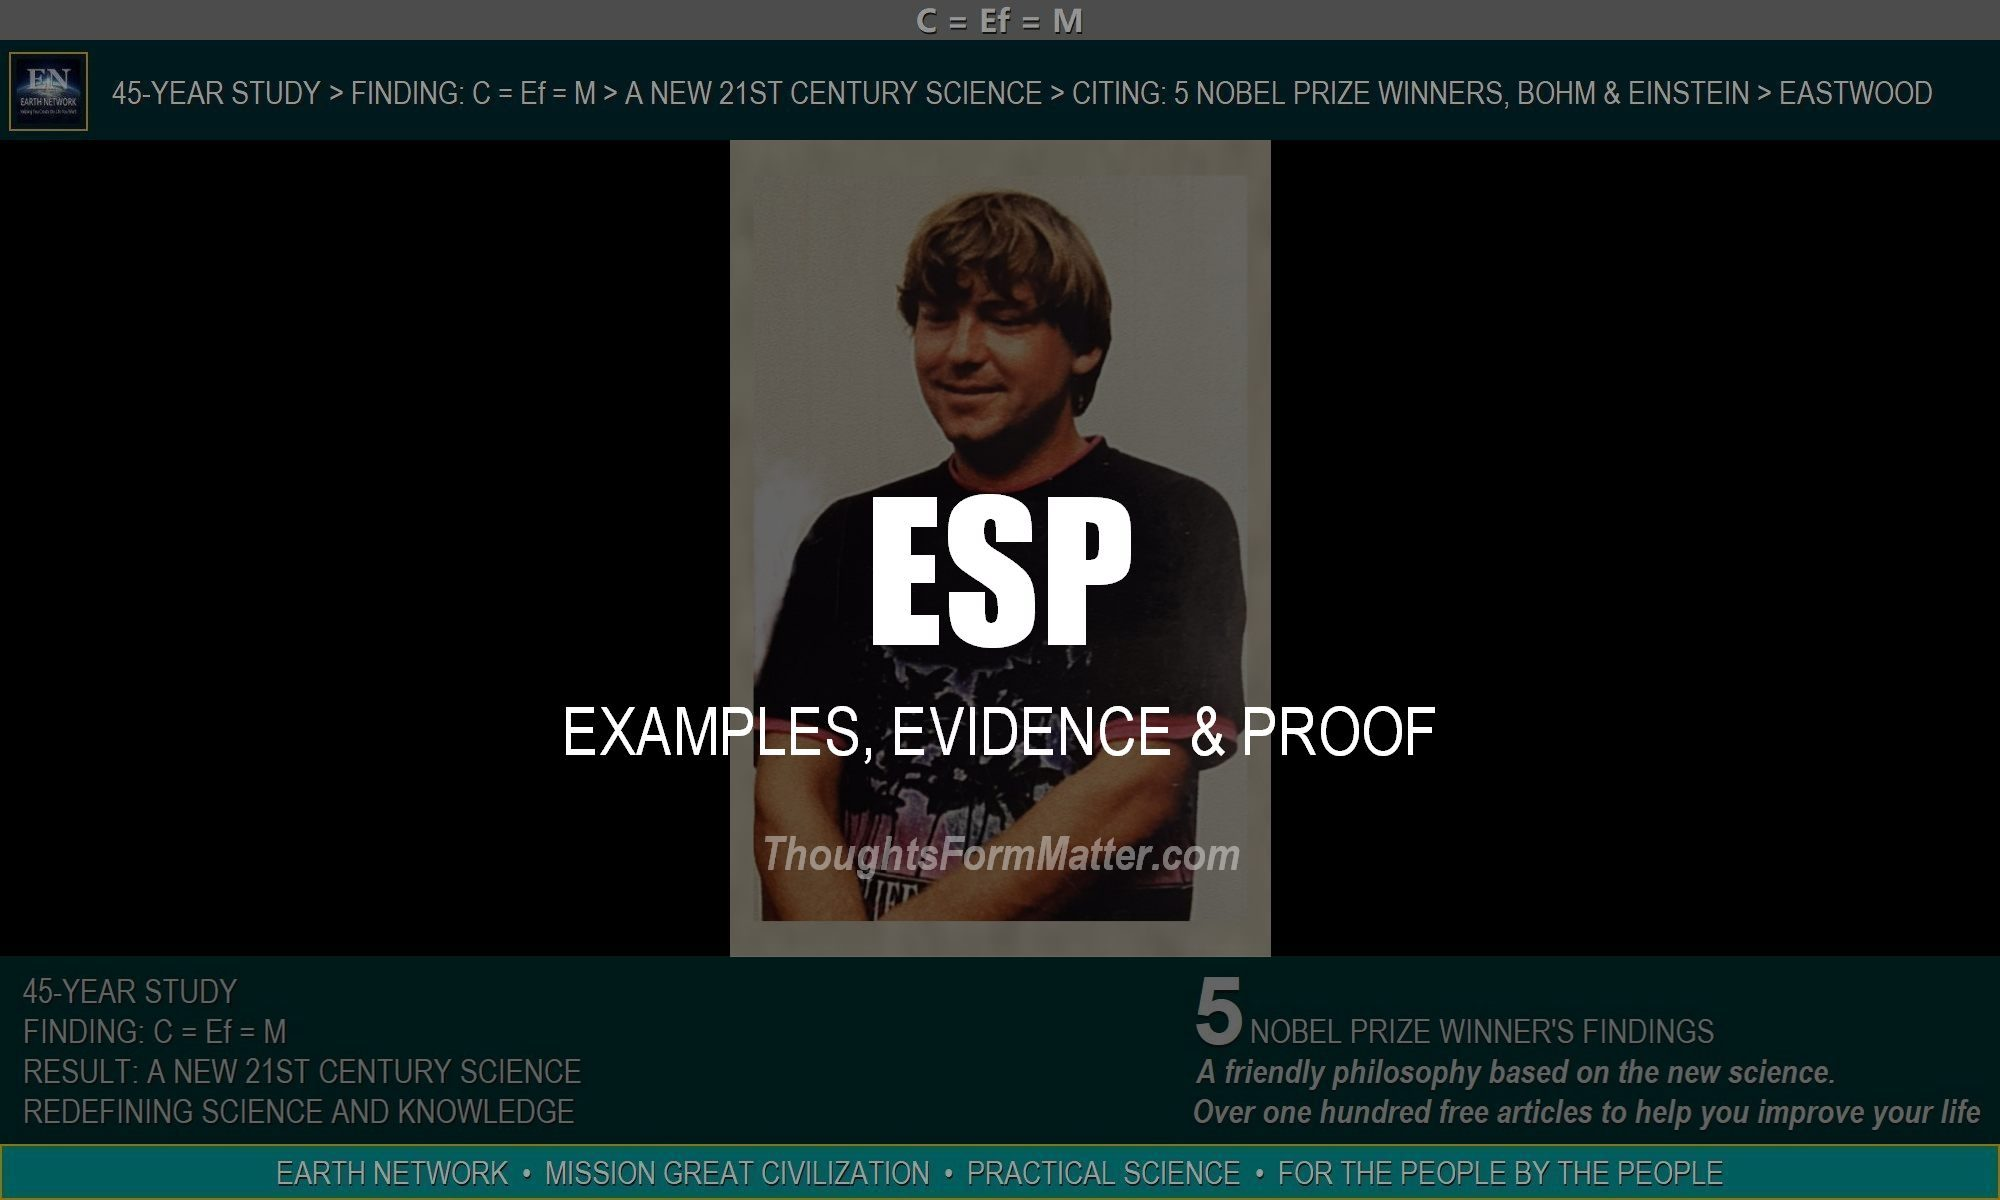 William Eastwood explains what ESP really is and how to develop it, with examples, evidence and proof.